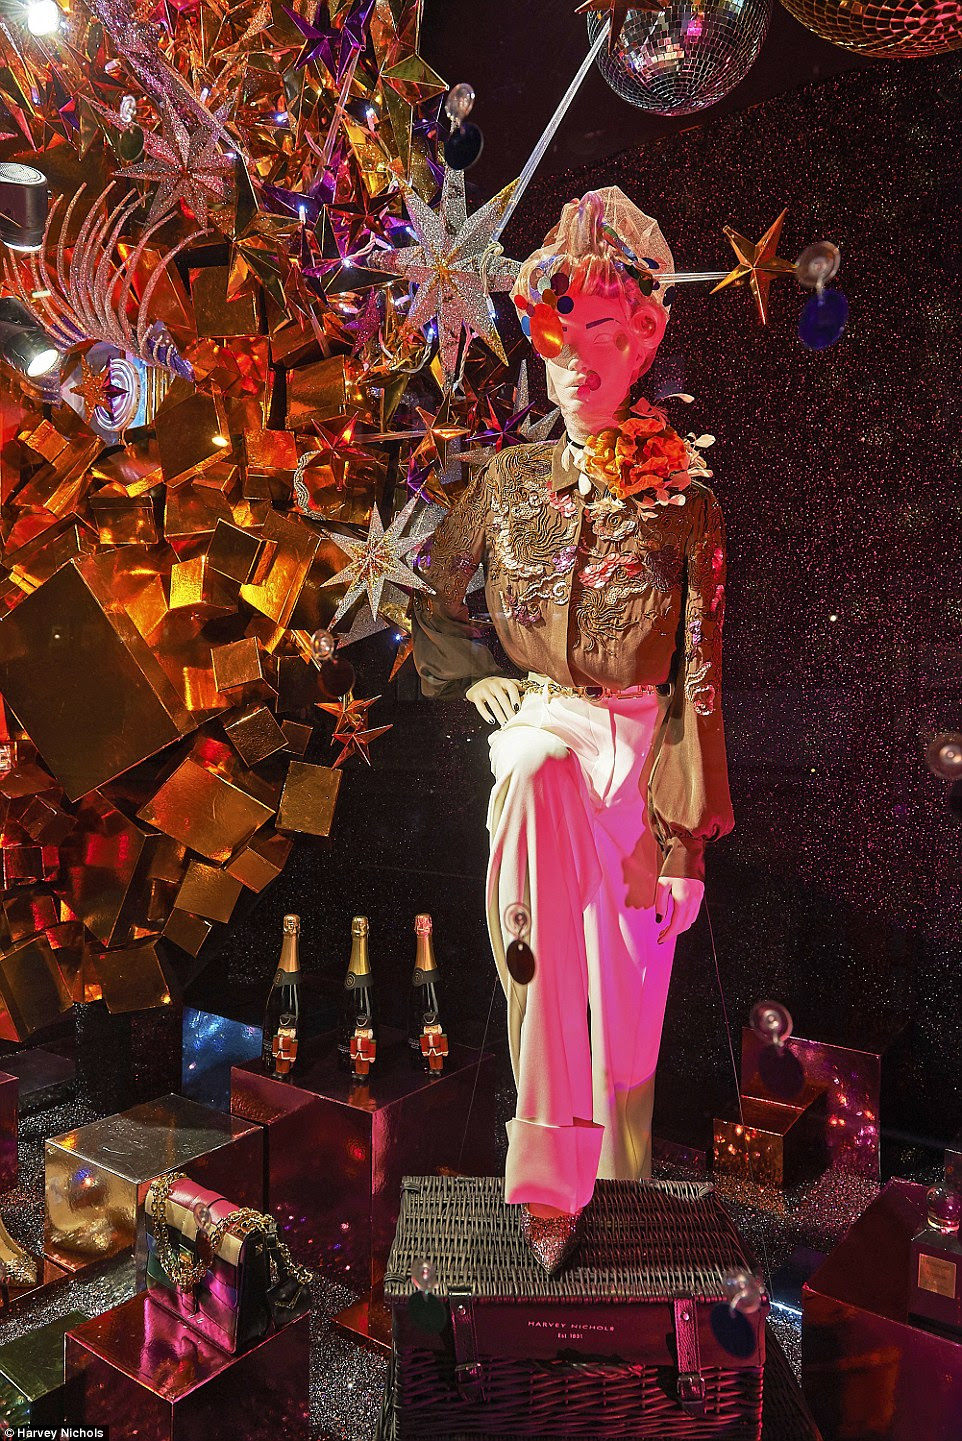 Wide-legged trousers with high-waists teamed with embellished shirts also celebrate the disco era in this festive window